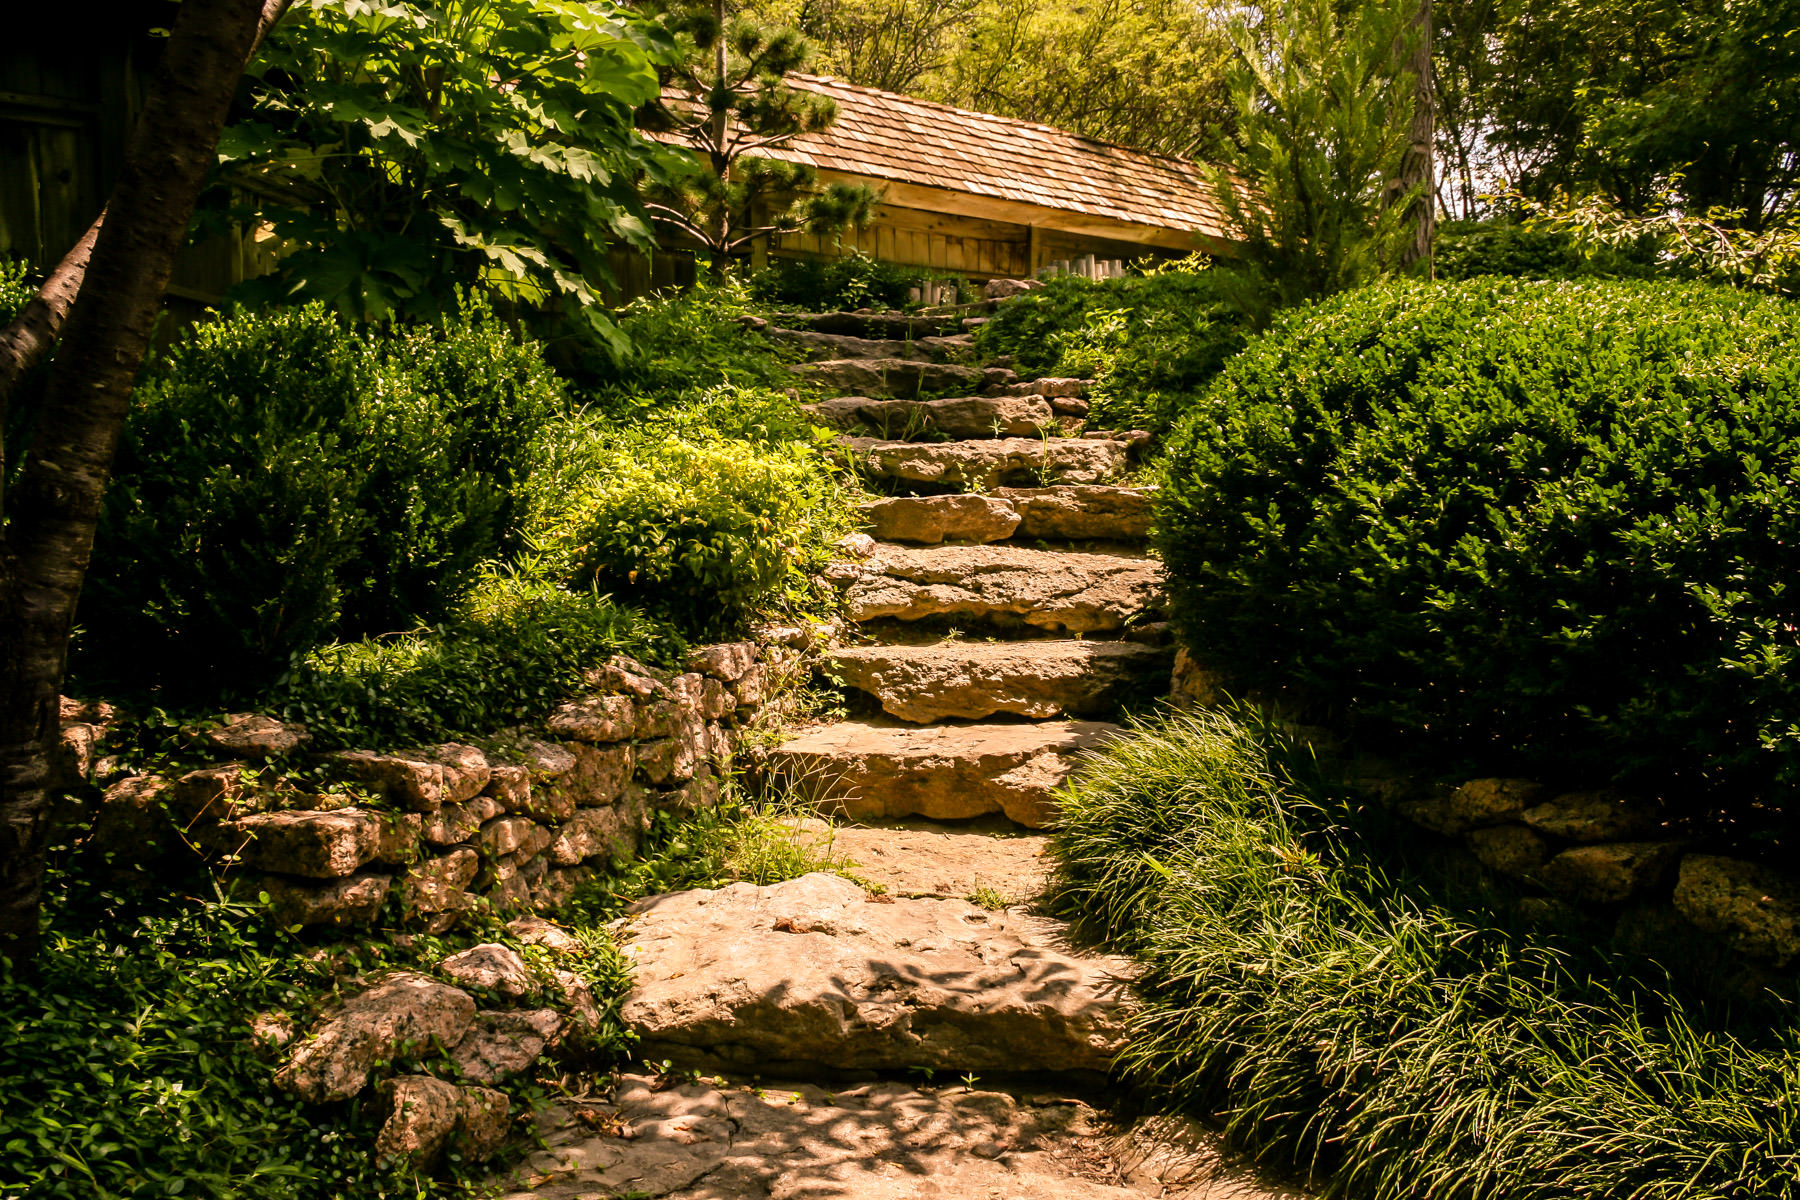 A stone staircase leads up to a building at the Fort Worth Botanic Gardens.